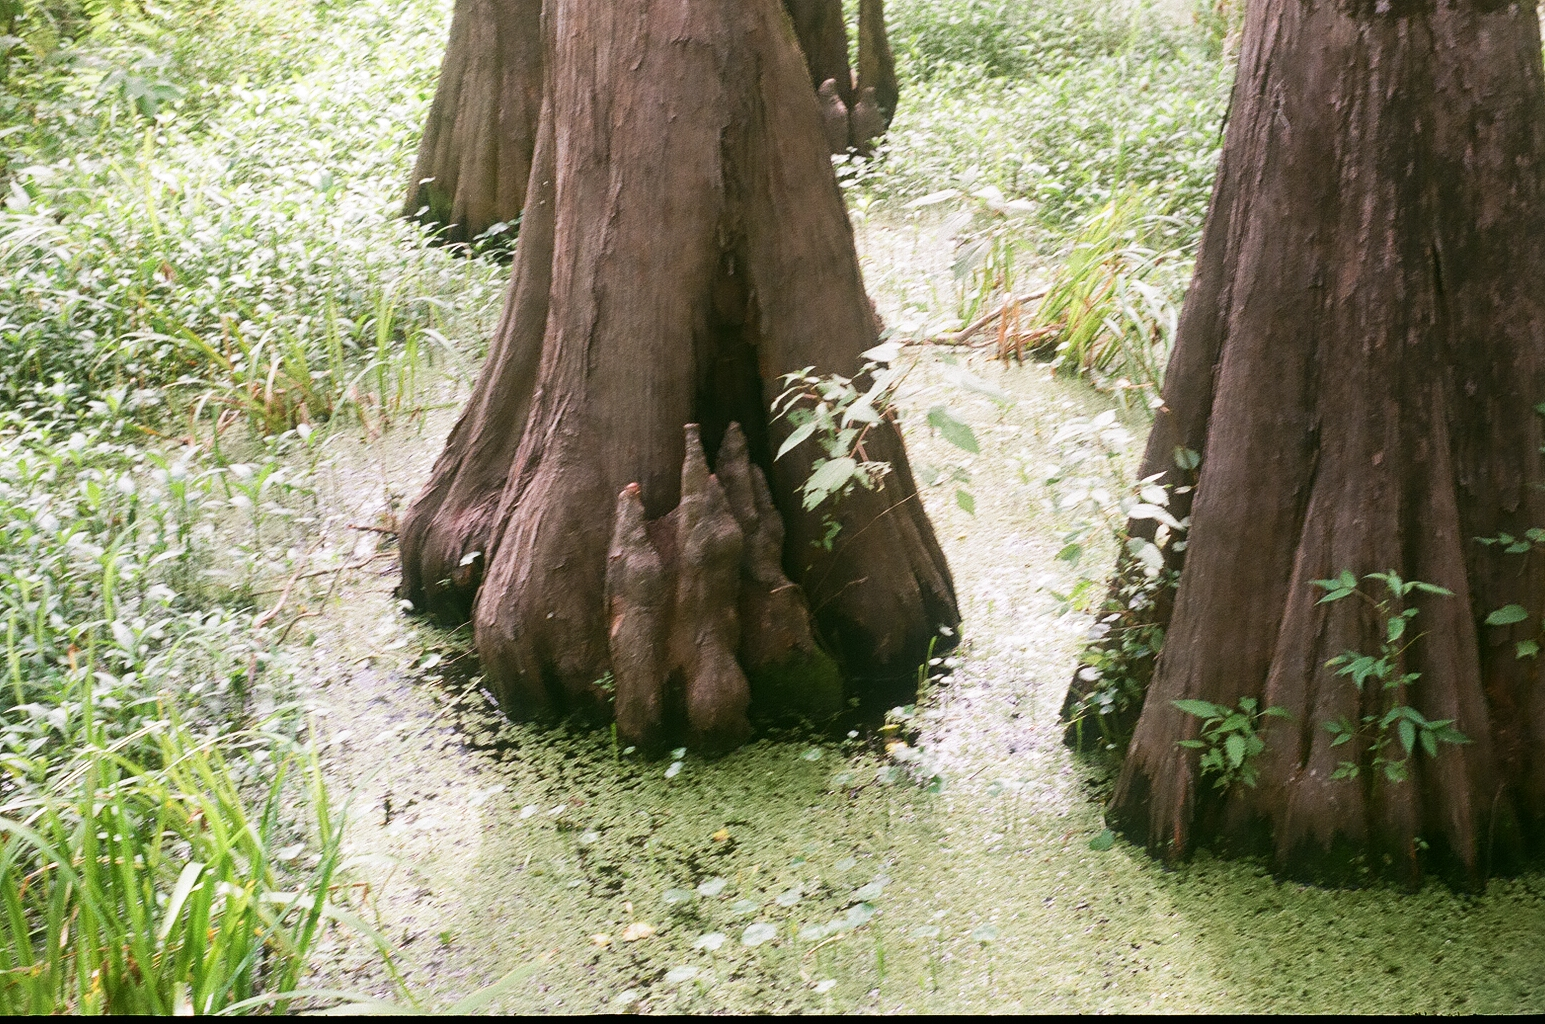 Cypress knees rising out of the water